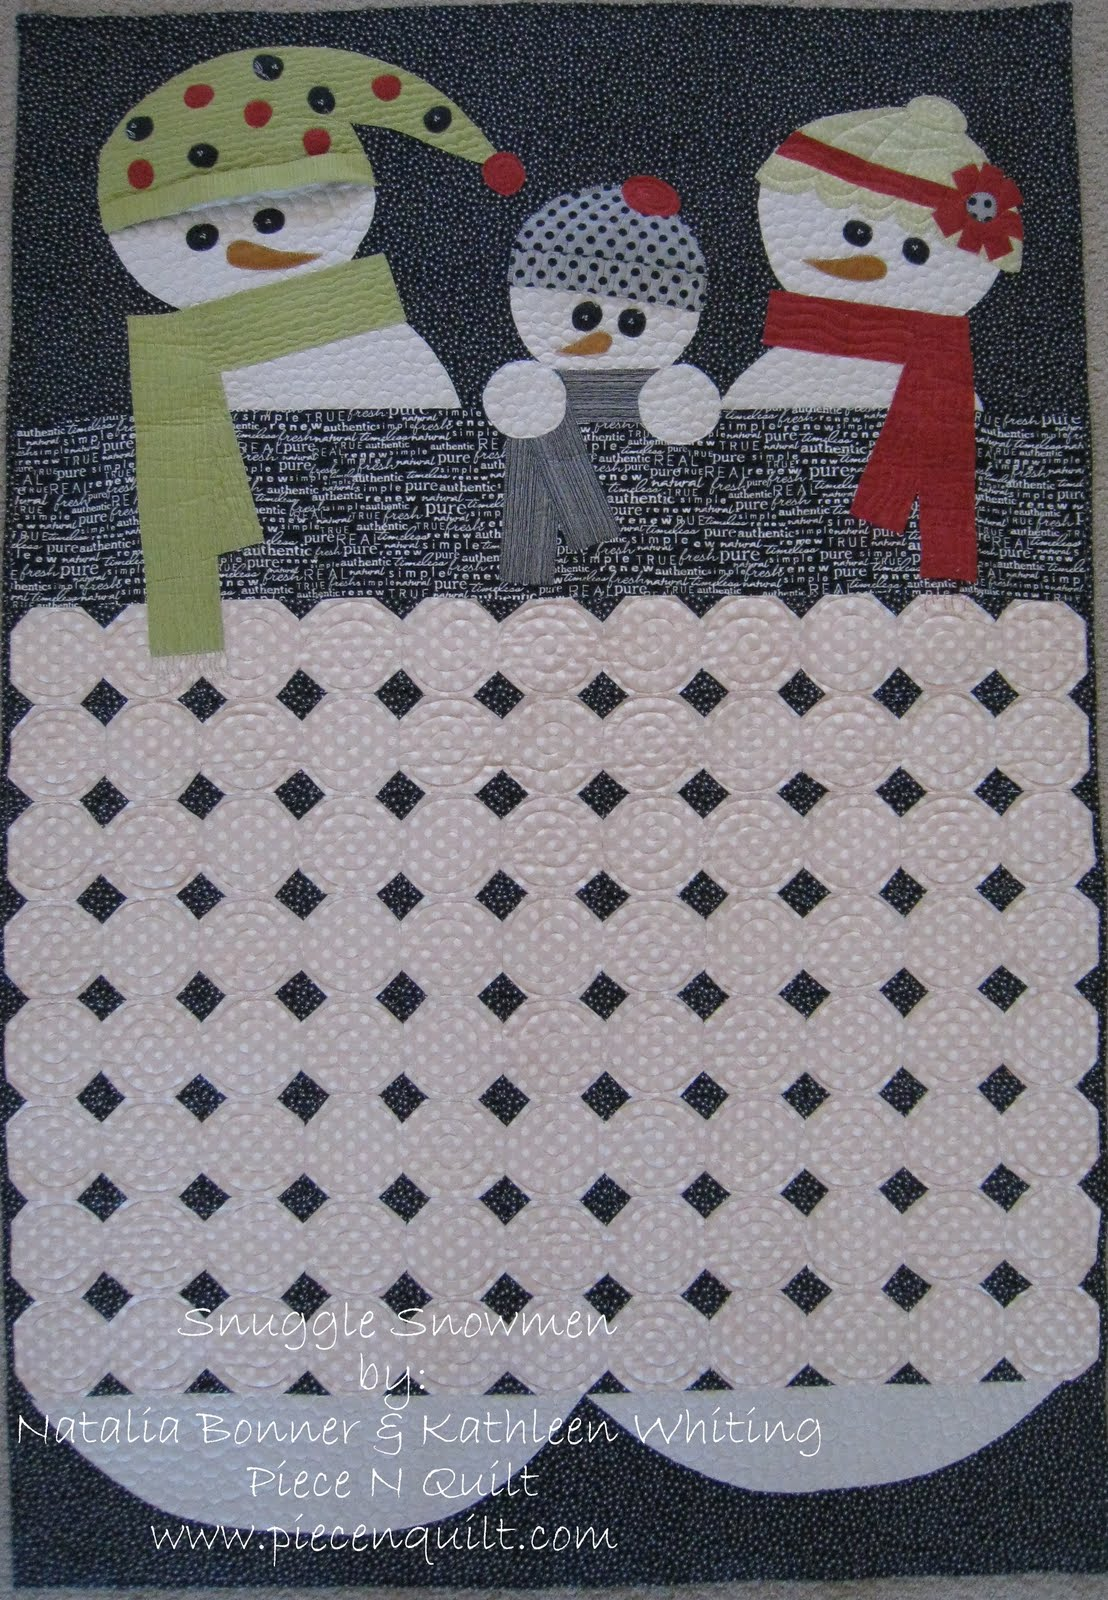 Quilt Inspiration: Free pattern day: Snowflake and snowman quilts